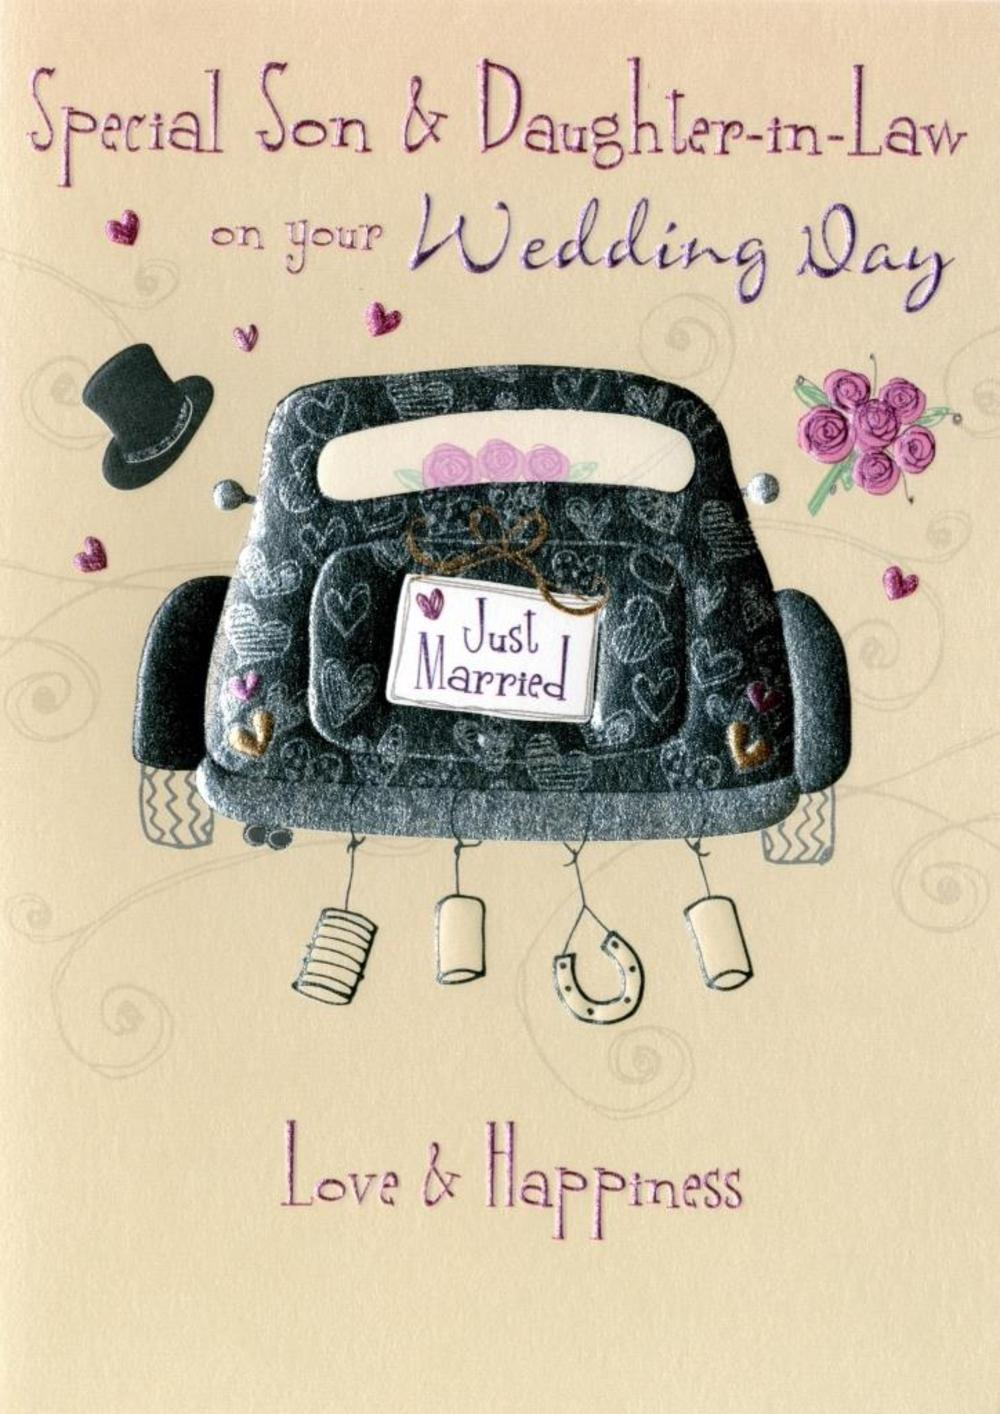 Son & Daughter-In-Law Wedding Day Greeting Card